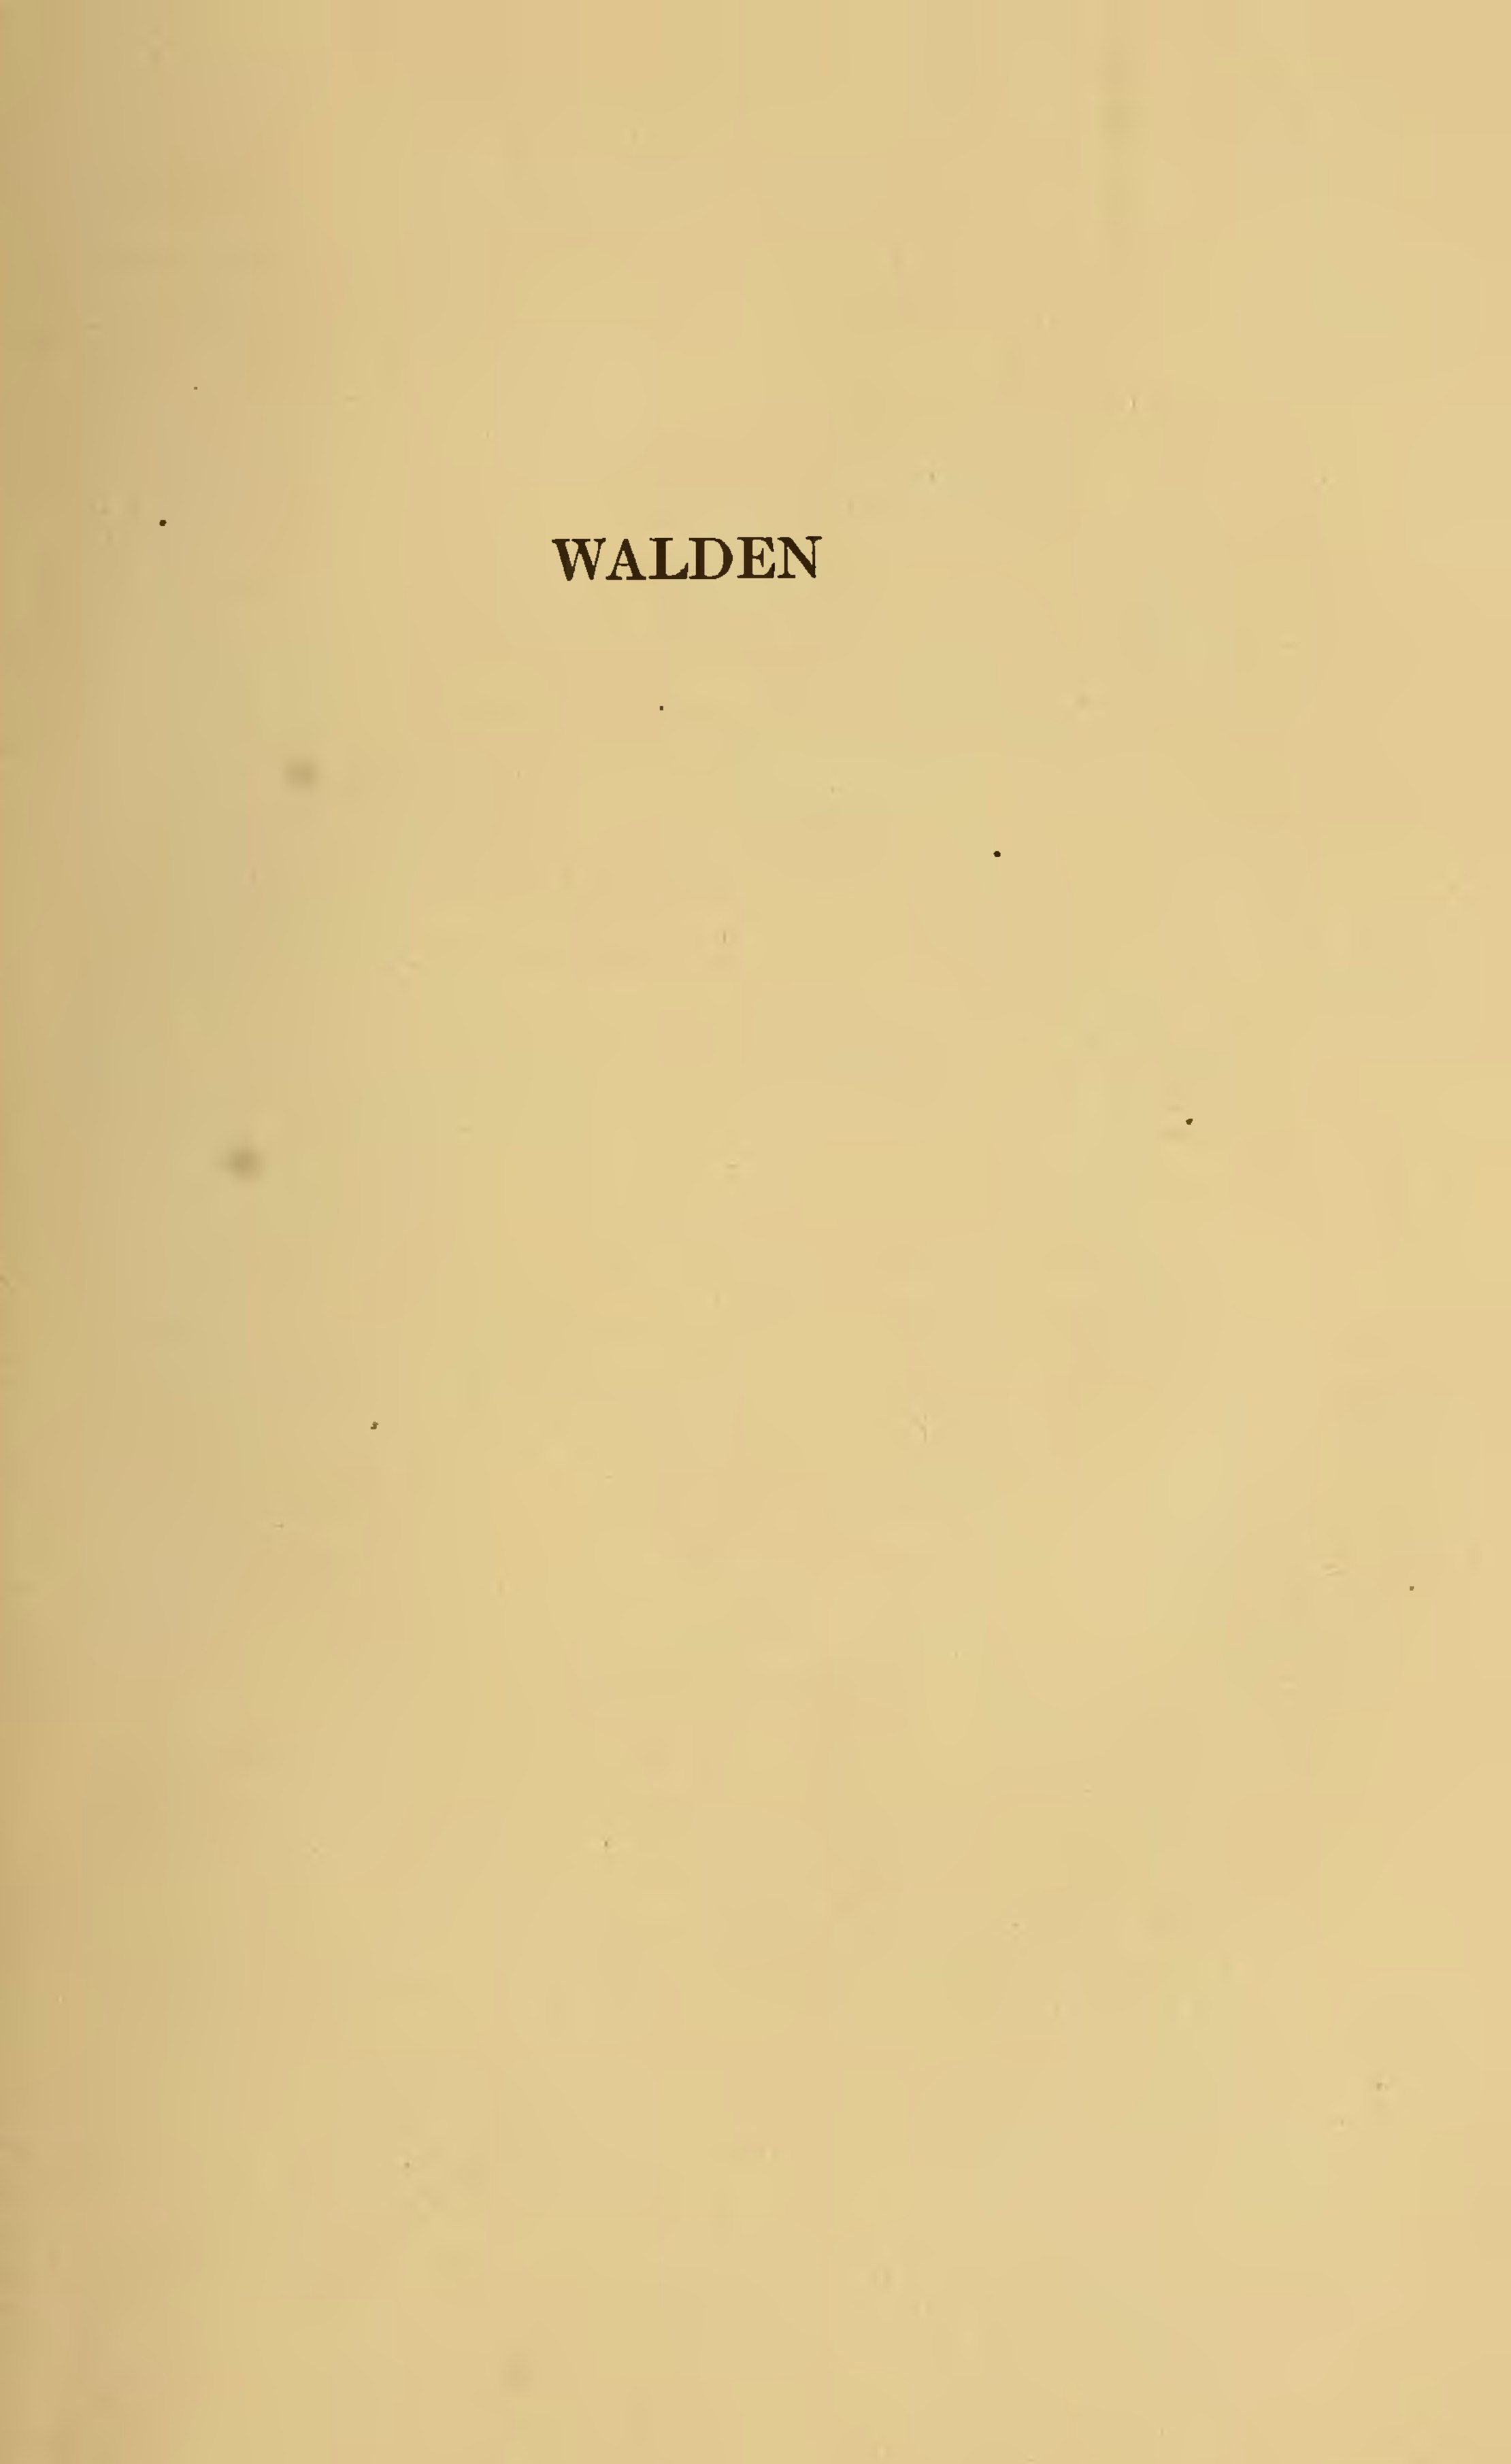 walden and other writings by henry david thoreau pdf